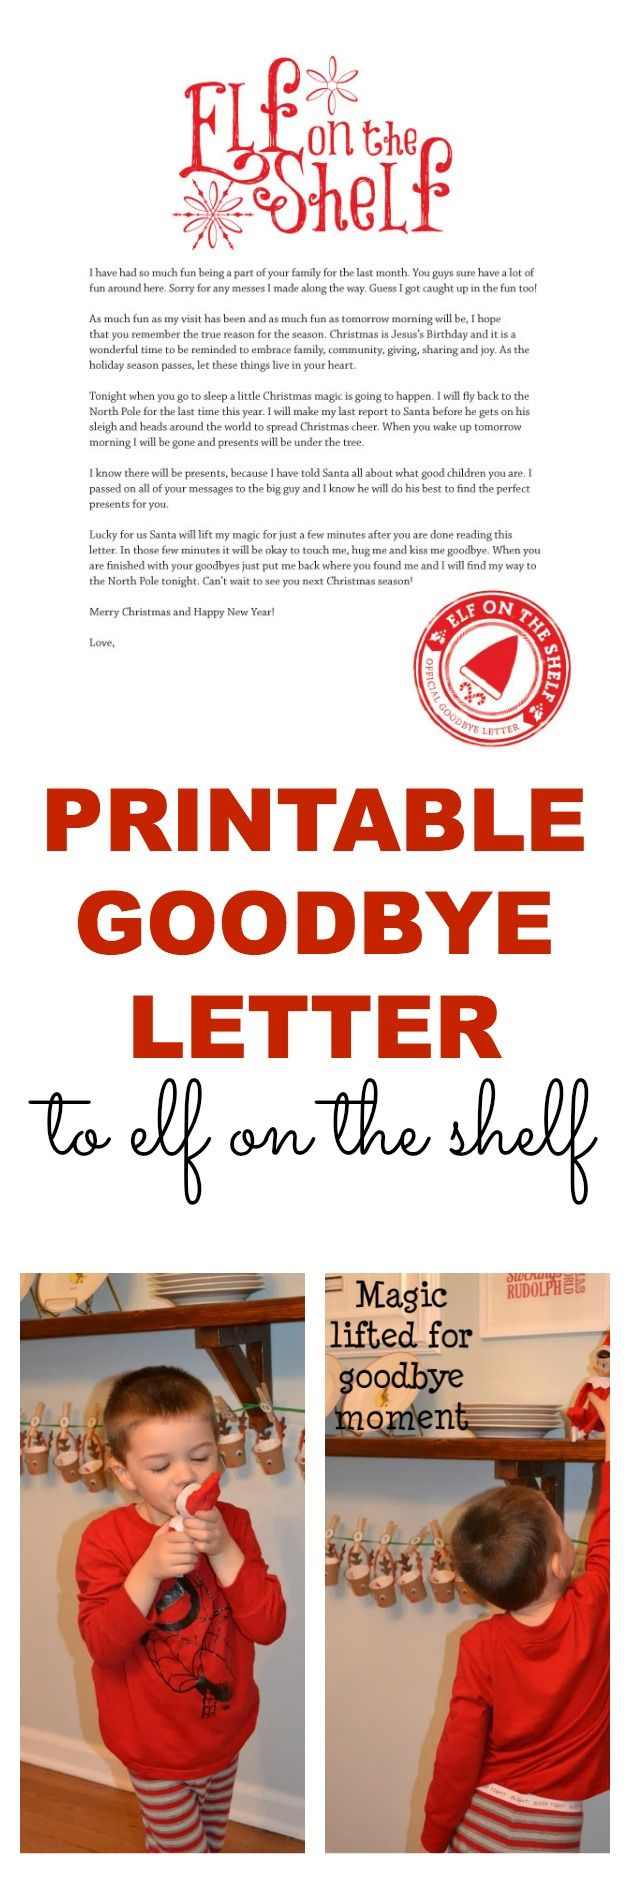 A printable goodbye letter for Elf on the Shelf. Perfect way to wrap up all the fun--even has a reminder about the reason for the season.